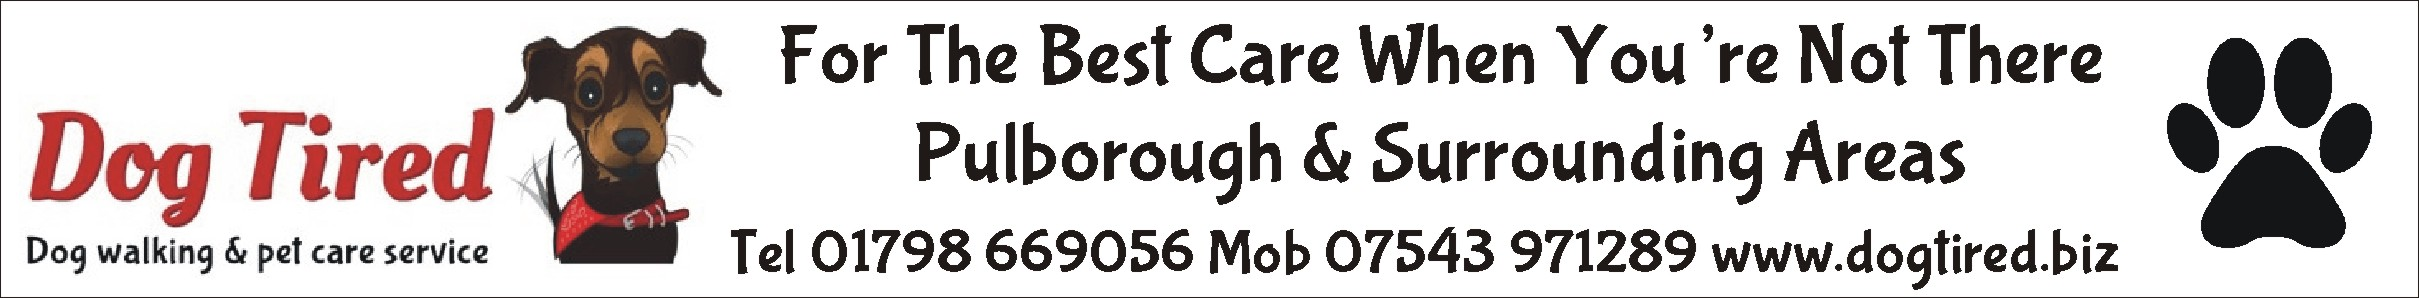 For the best dog care in Pulborough!